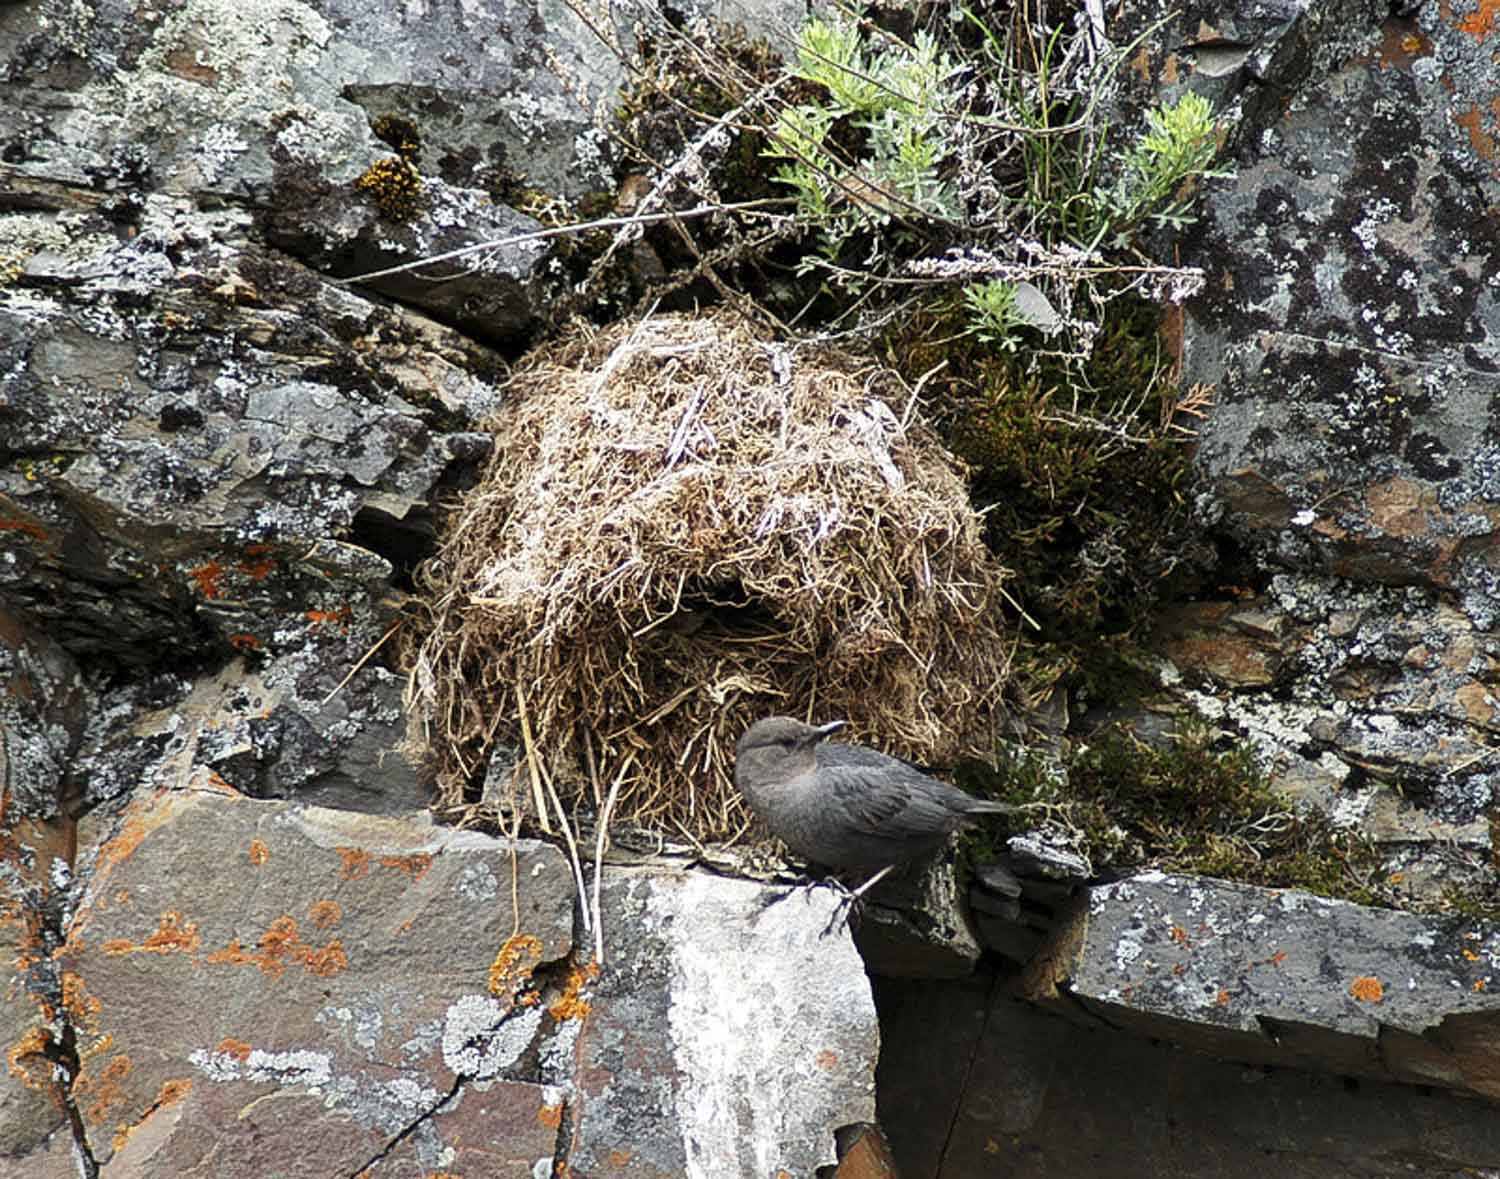 One of our favorite birds that live along the river is the Ozel, or dipper, here is one at the nest, rately seen, and only if you look carefully.